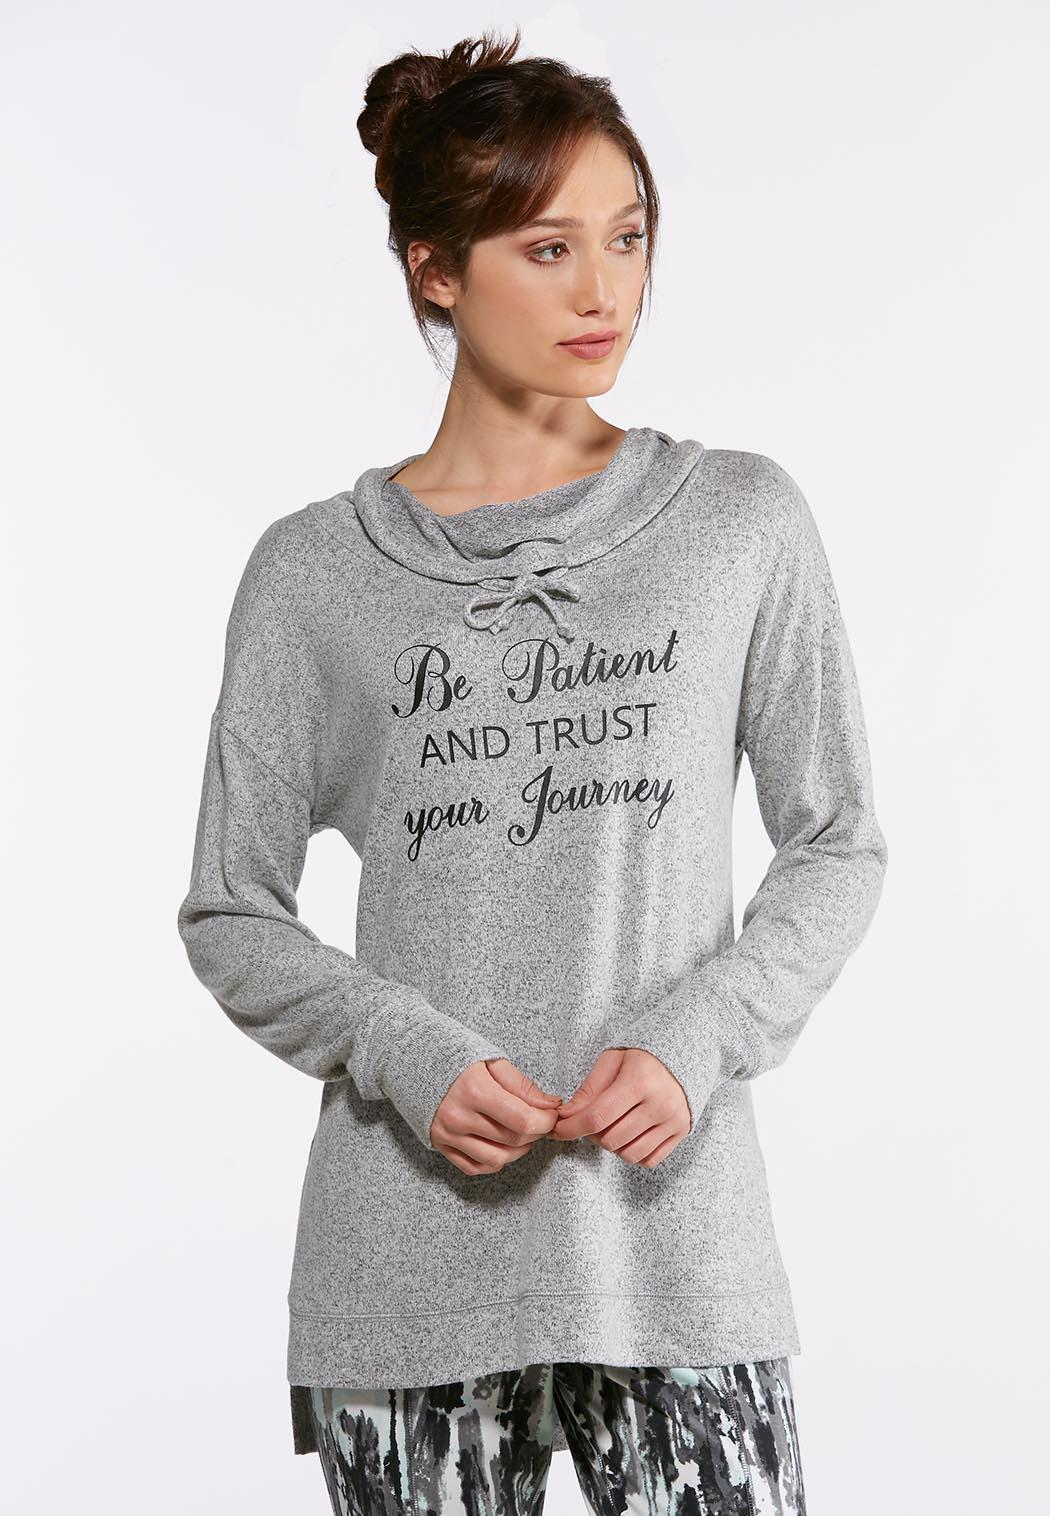 6b35a21f87649 Trust Your Journey Top alternate view Trust Your Journey Top